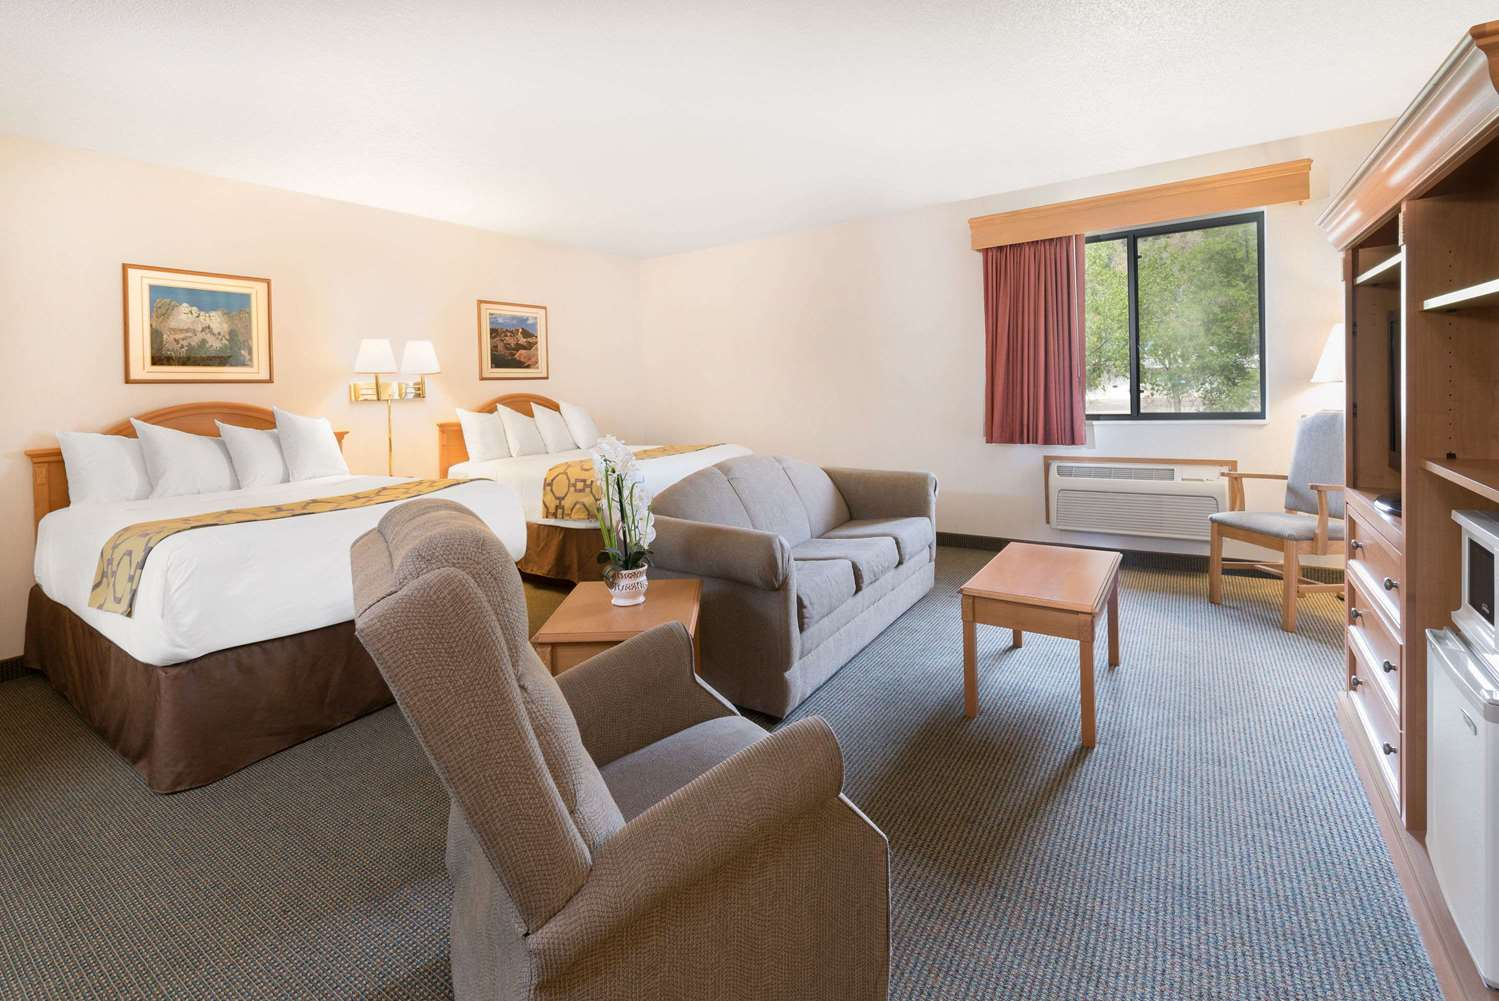 boyes hot springs chat rooms Boyes hot springs online hotel booking - viamichelin book your hotel room in boyes hot springs with viamichelin our partners allow you to book online your hotel, bed and breakfast or apartment in boyes hot springs.